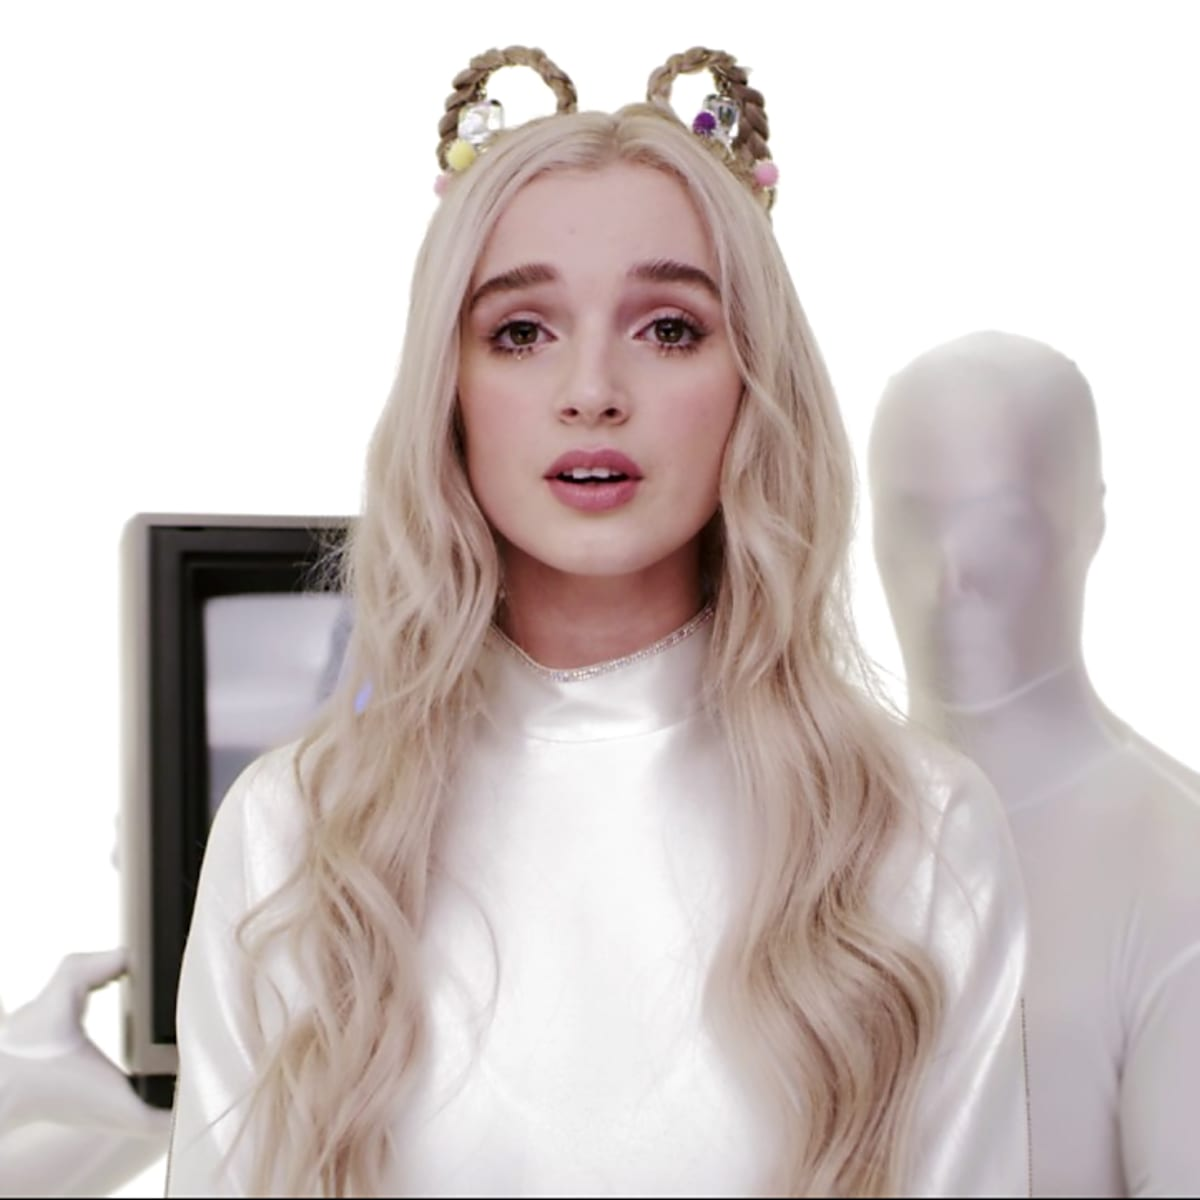 Poppy Youtube star